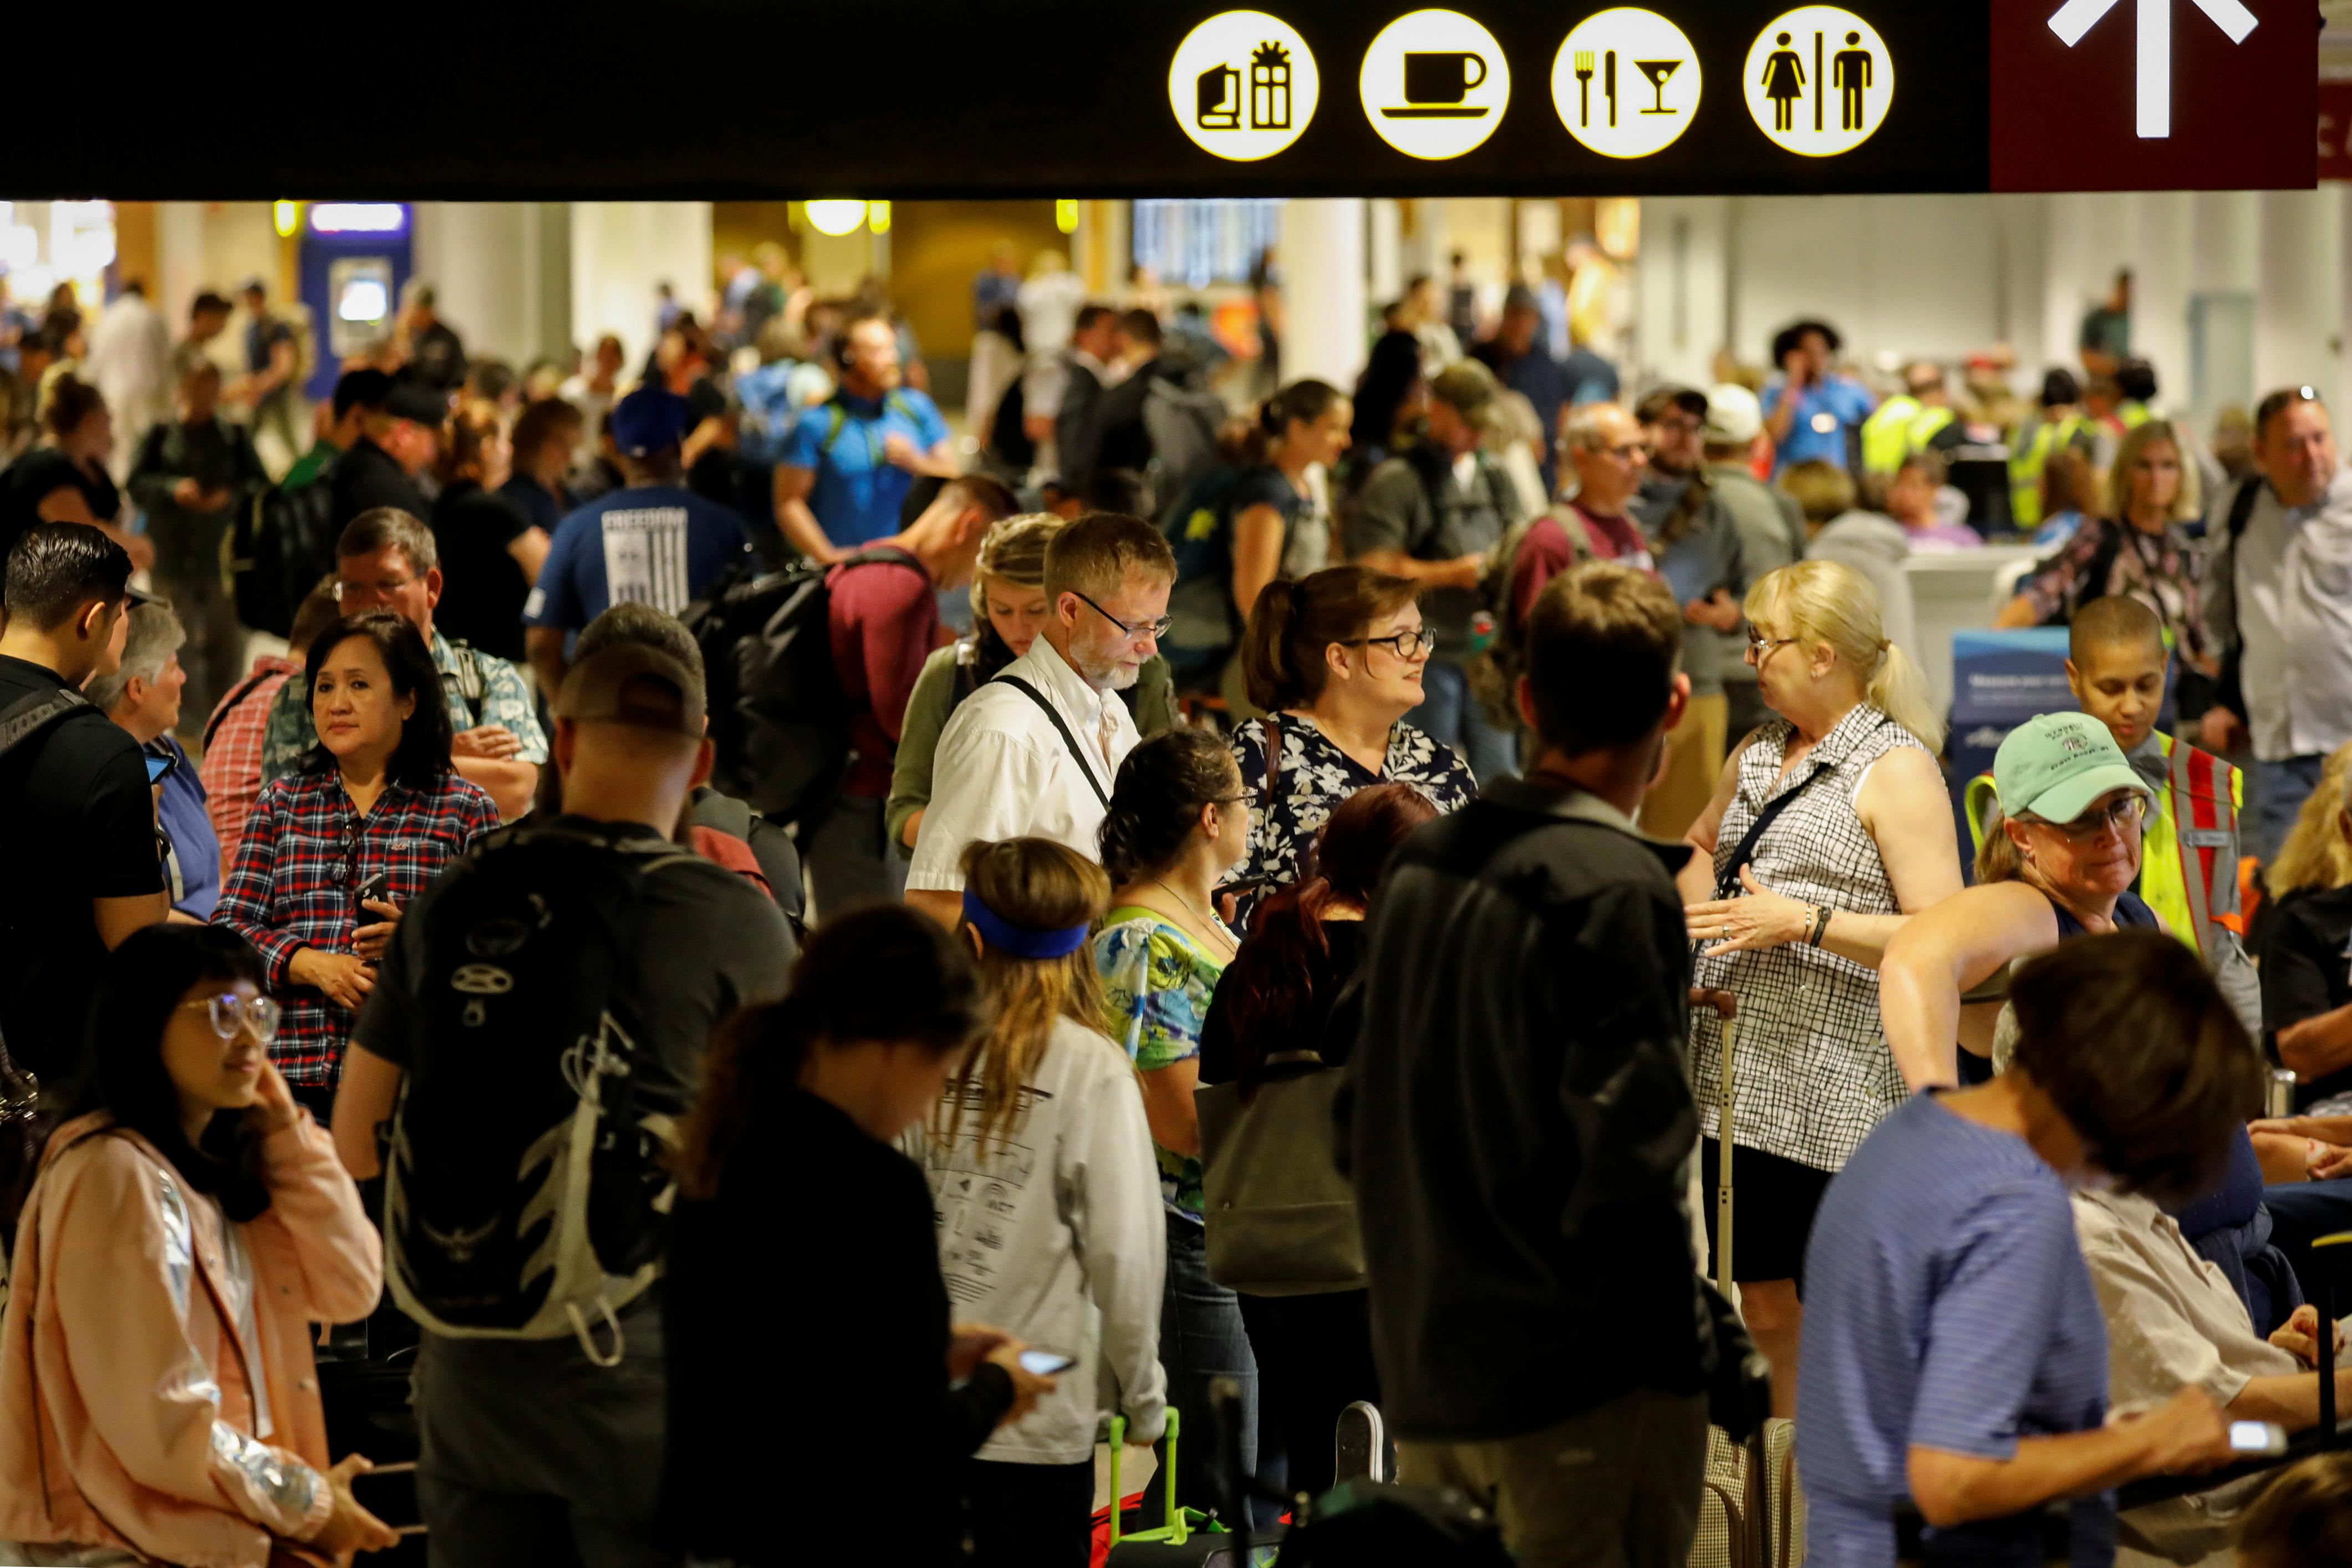 Air Alaska passengers wait in the terminal following an incident where an airline employee took off in an airplane, at Seattle-Tacoma International Airport in Seattle, Washington, U.S., August 10, 2018. Brendan McDermid